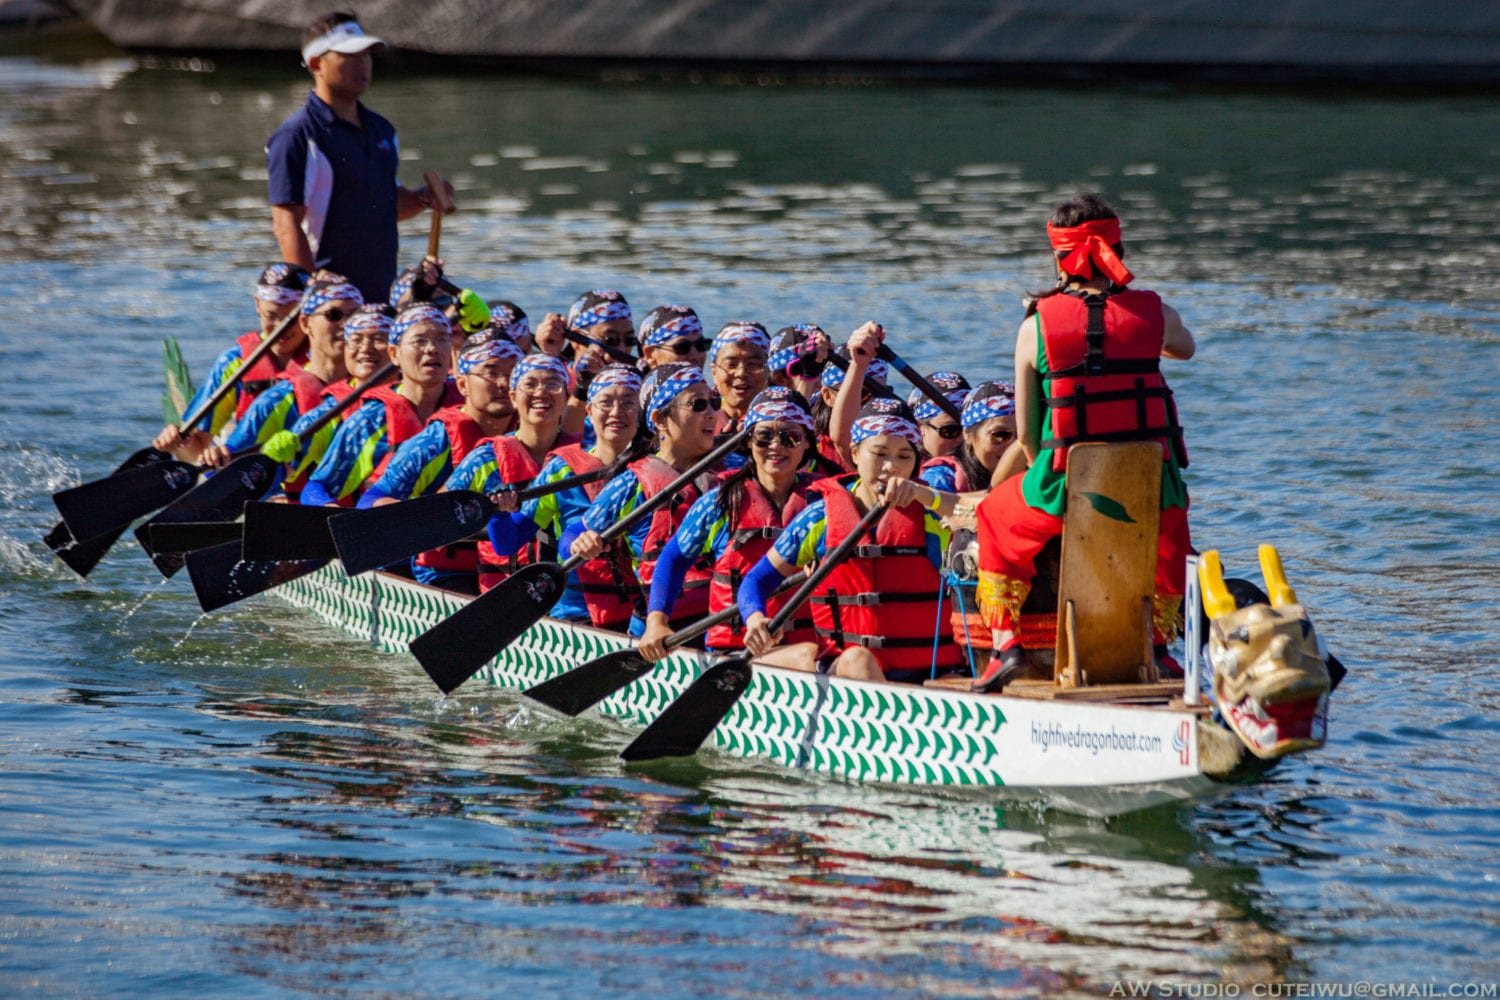 Village Of Port Jefferson Ready To Host 5th Annual Dragon